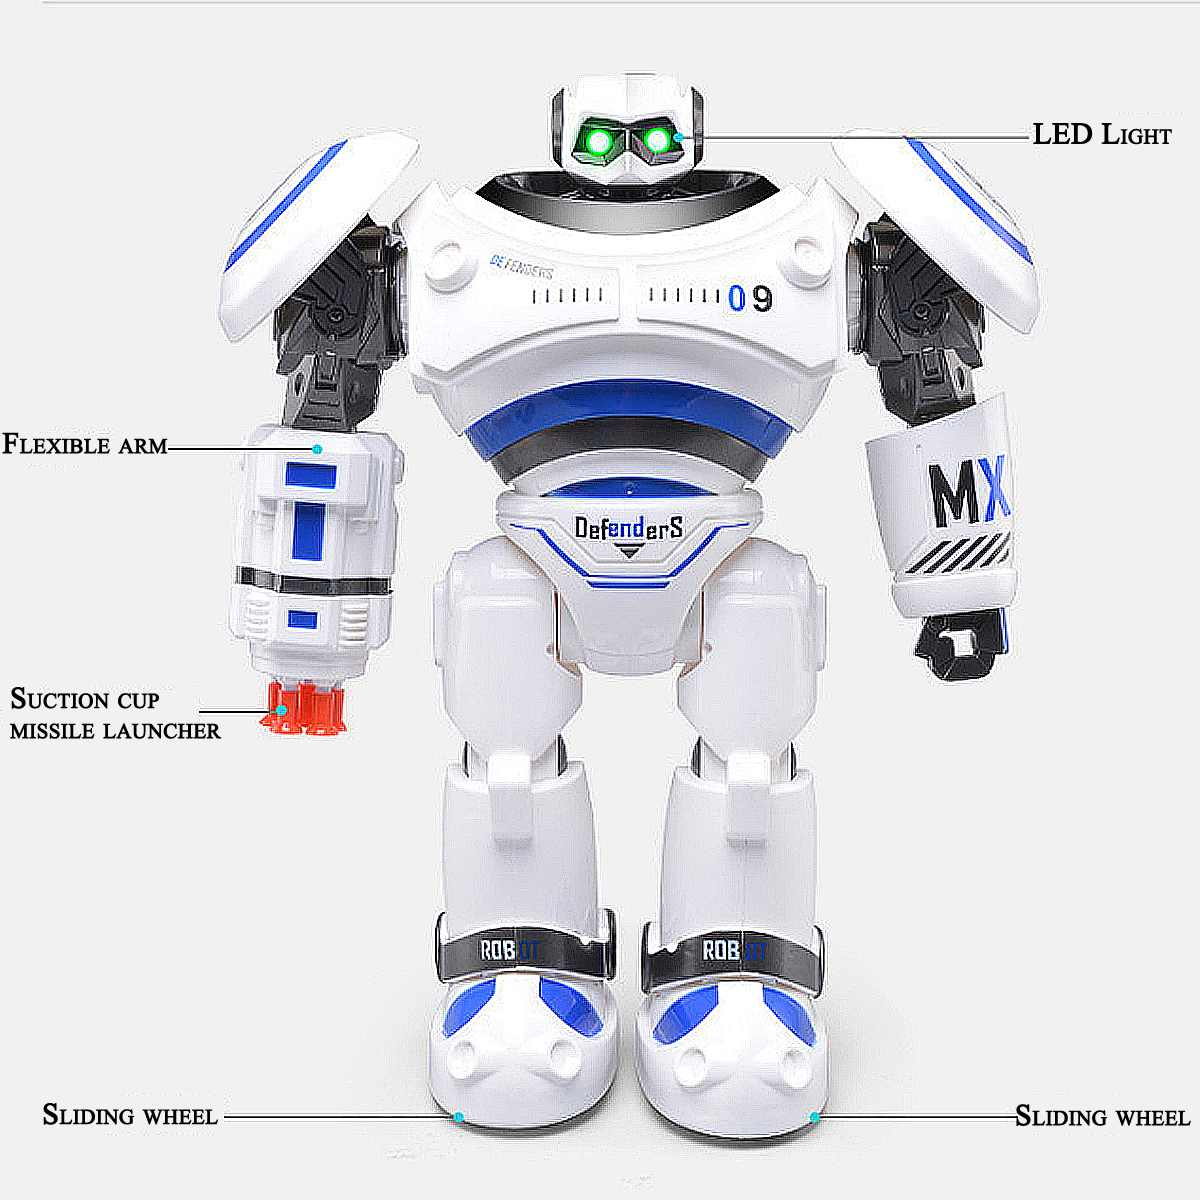 AD Polices Files Programmable Combat Robot with Remote Control for Kids